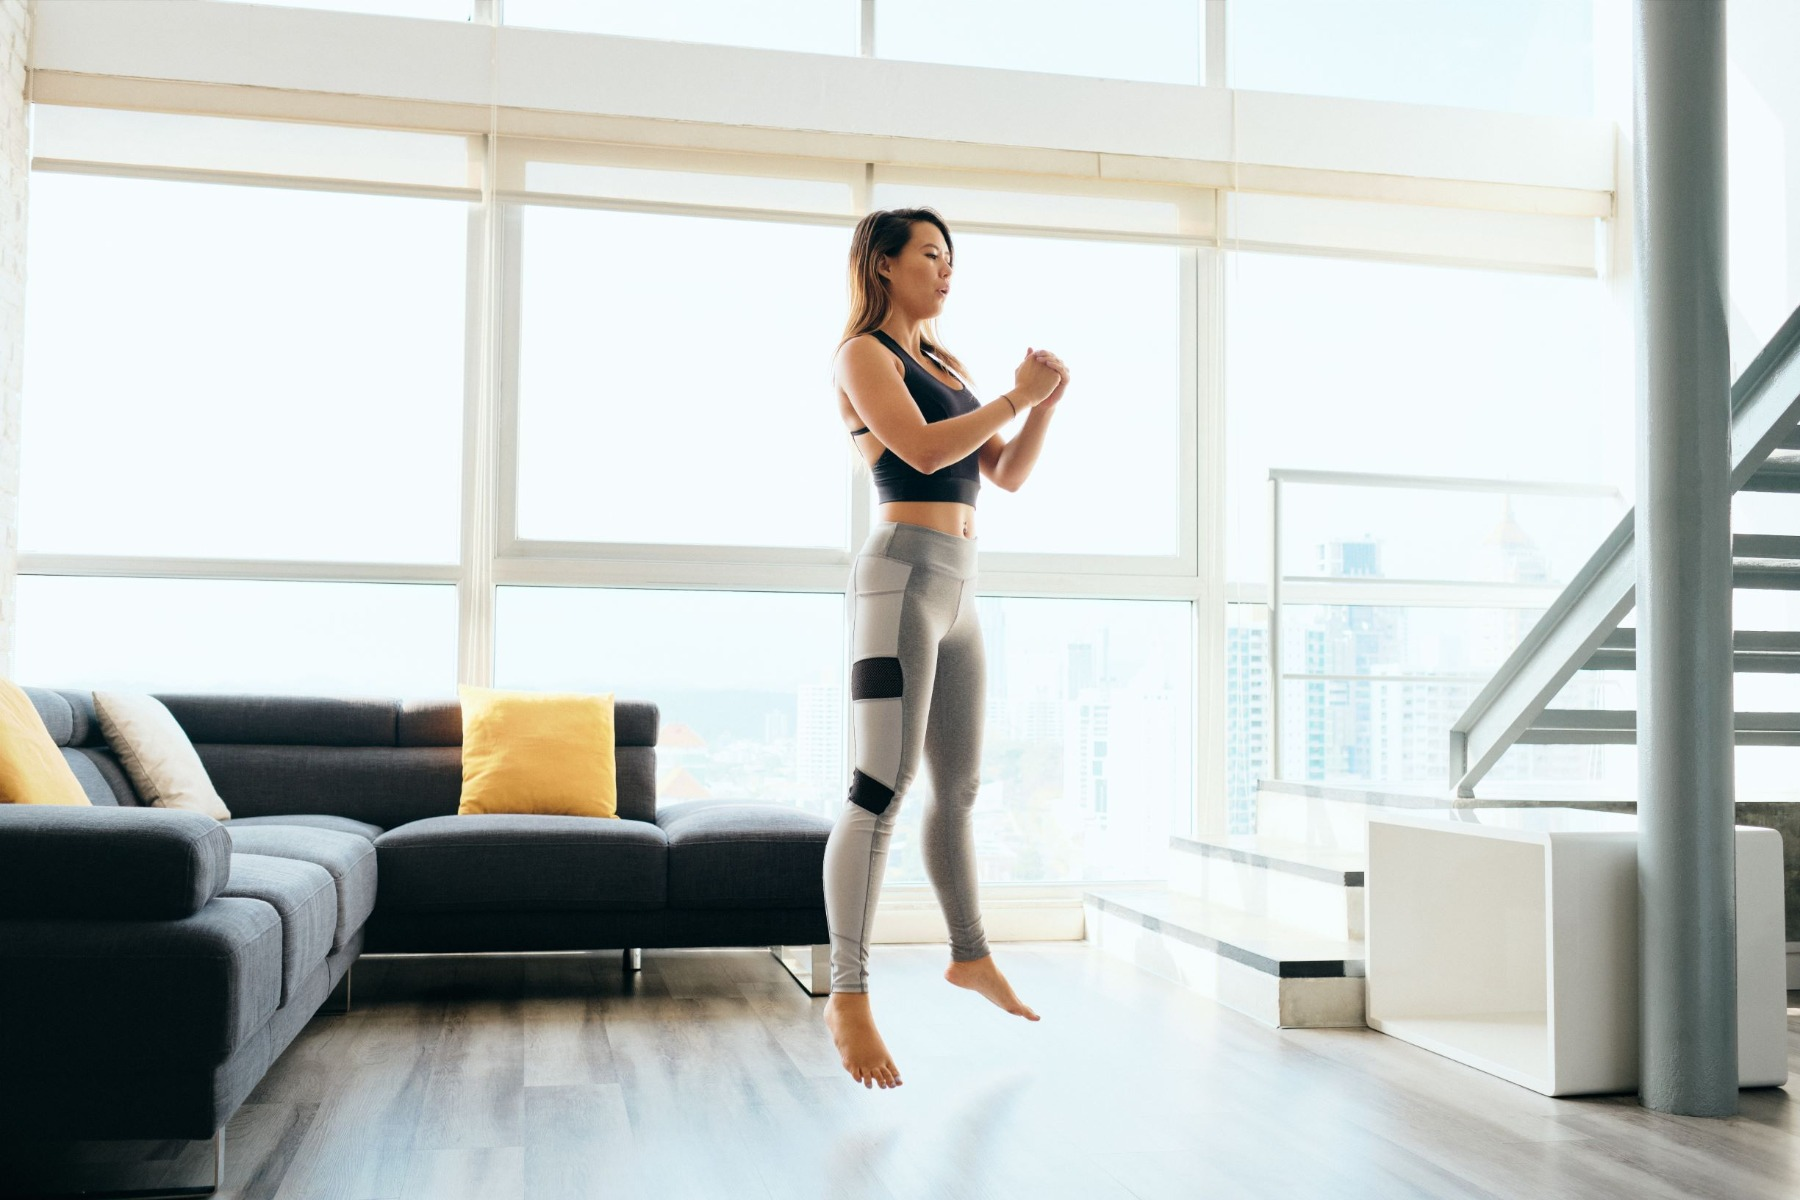 Woman doing jump squats in living room